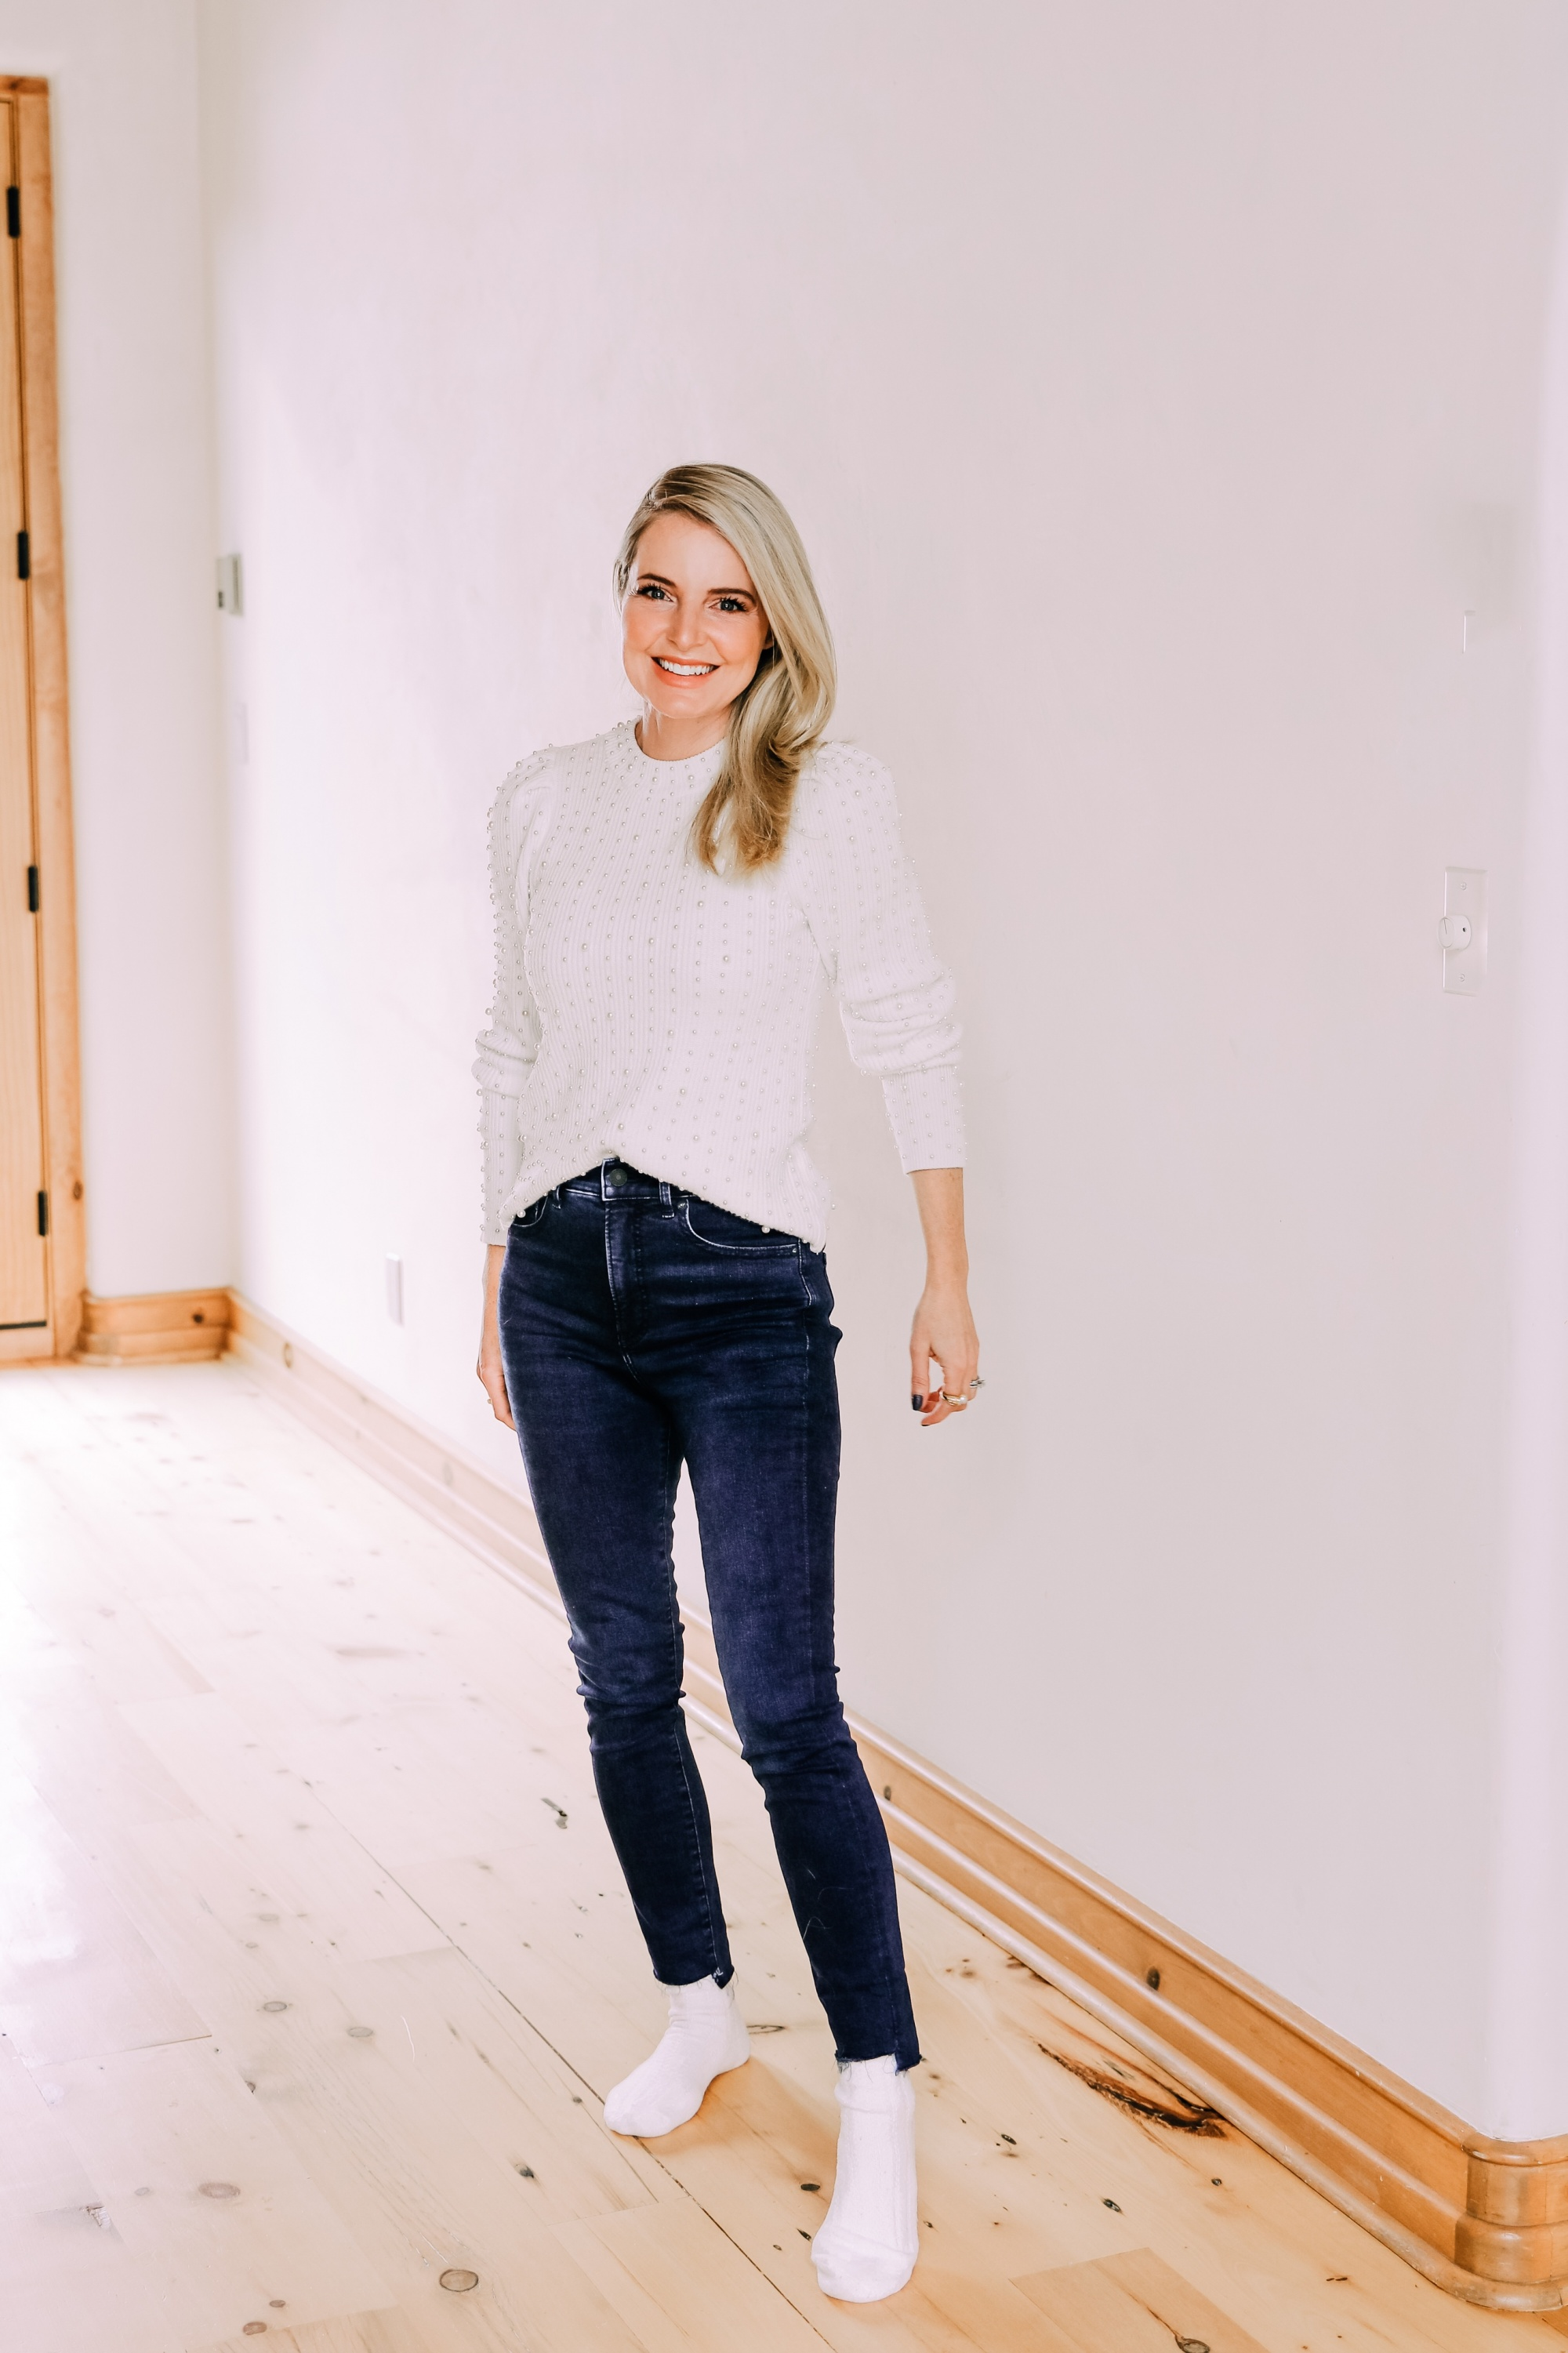 Black Friday Doorbuster, Erin Busbee of Busbee Style wearing a pearl embellished white sweater, raw step hem jeans, and cozy socks from Express in Telluride, Colorado